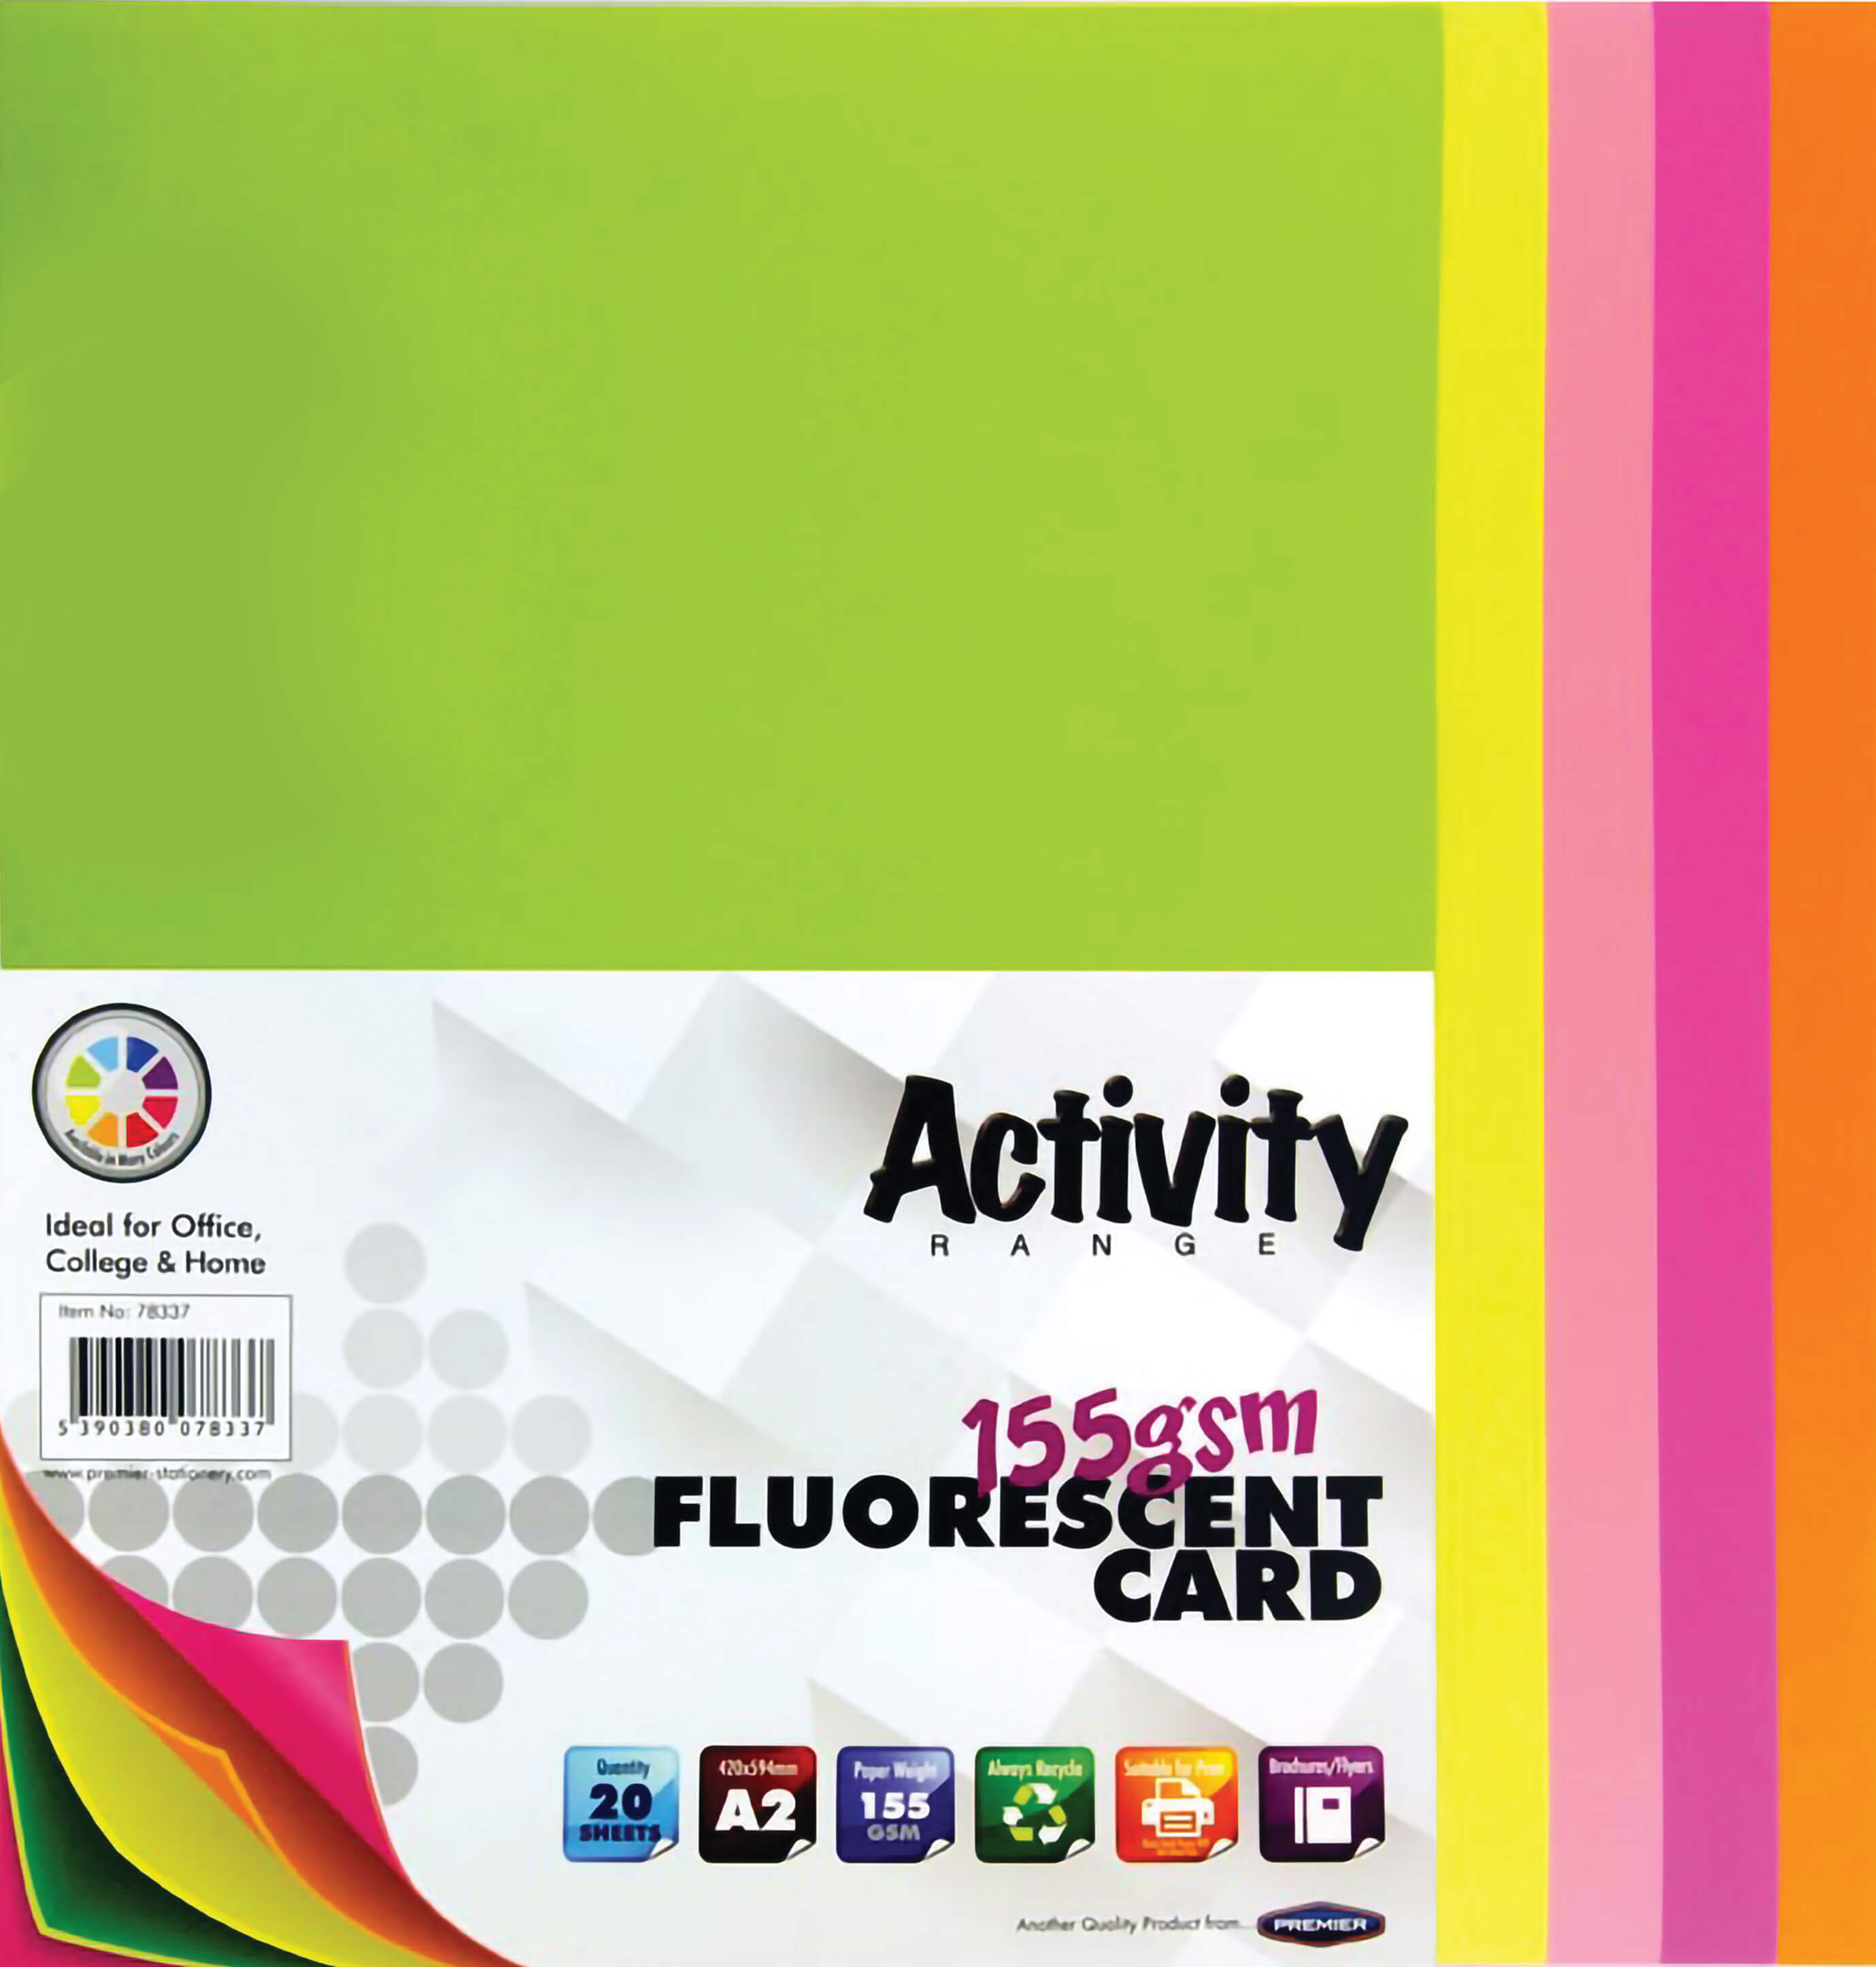 Card Fluorescent A2 155gsm - 20 Sheets